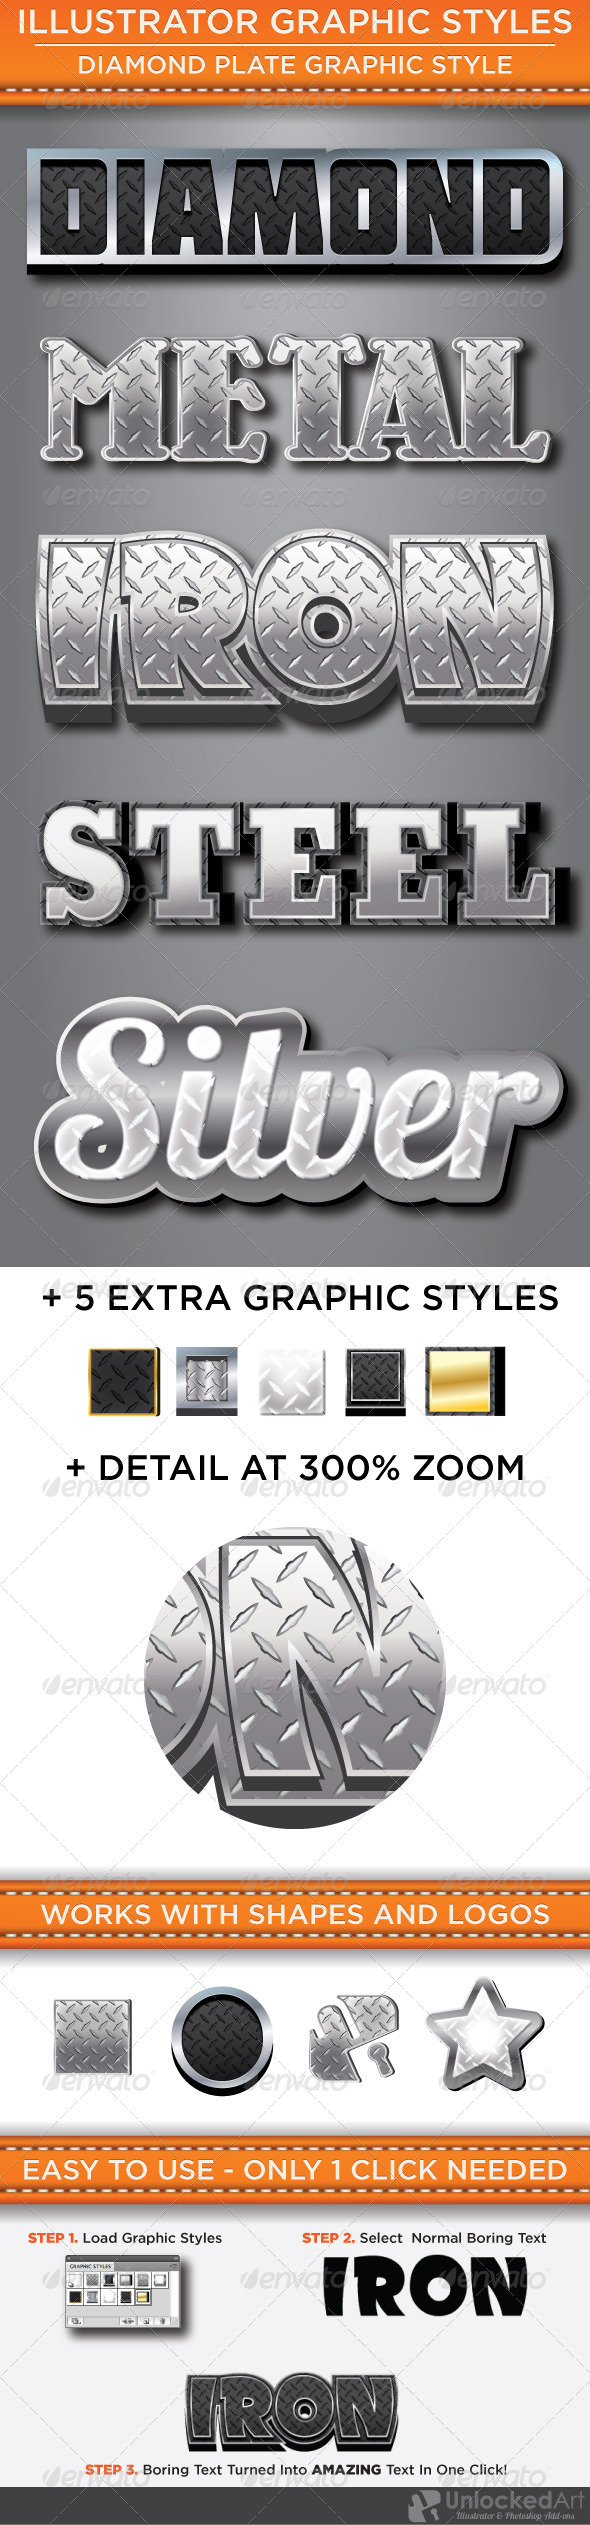 GraphicRiver Diamond Plate Graphic Styles 4552232